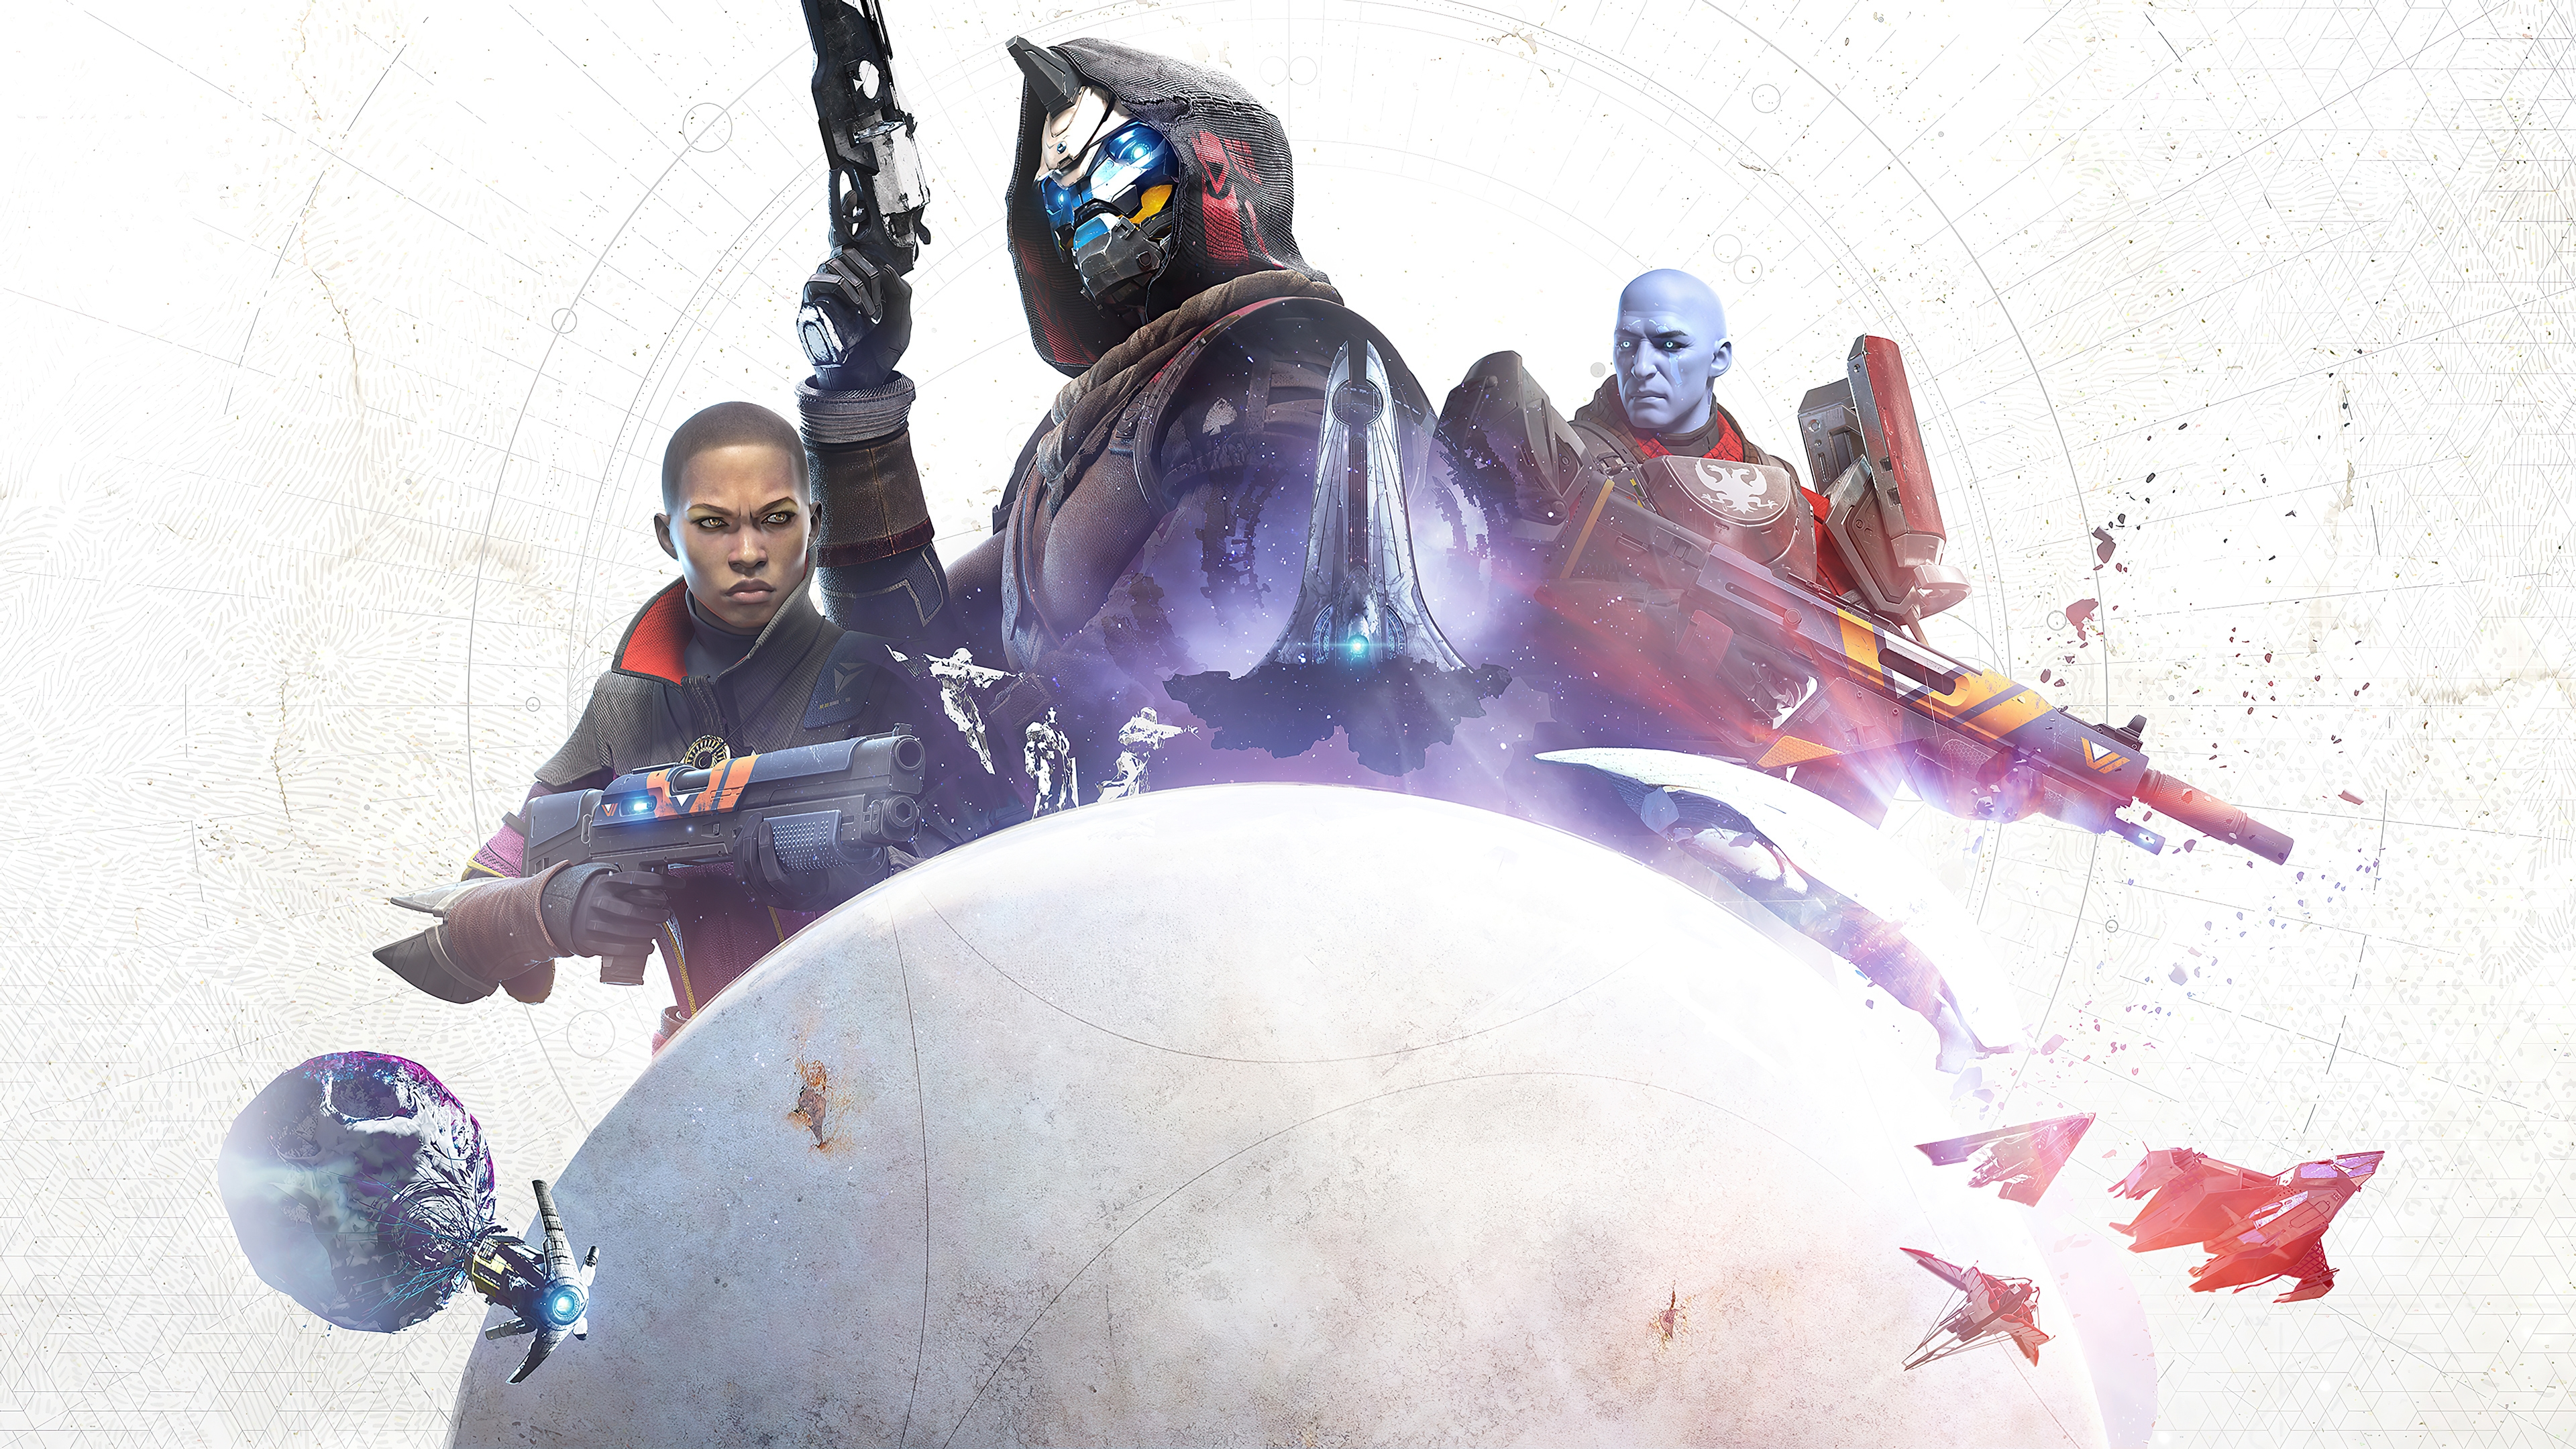 3 Destiny 2 Hd Wallpapers Backgrounds